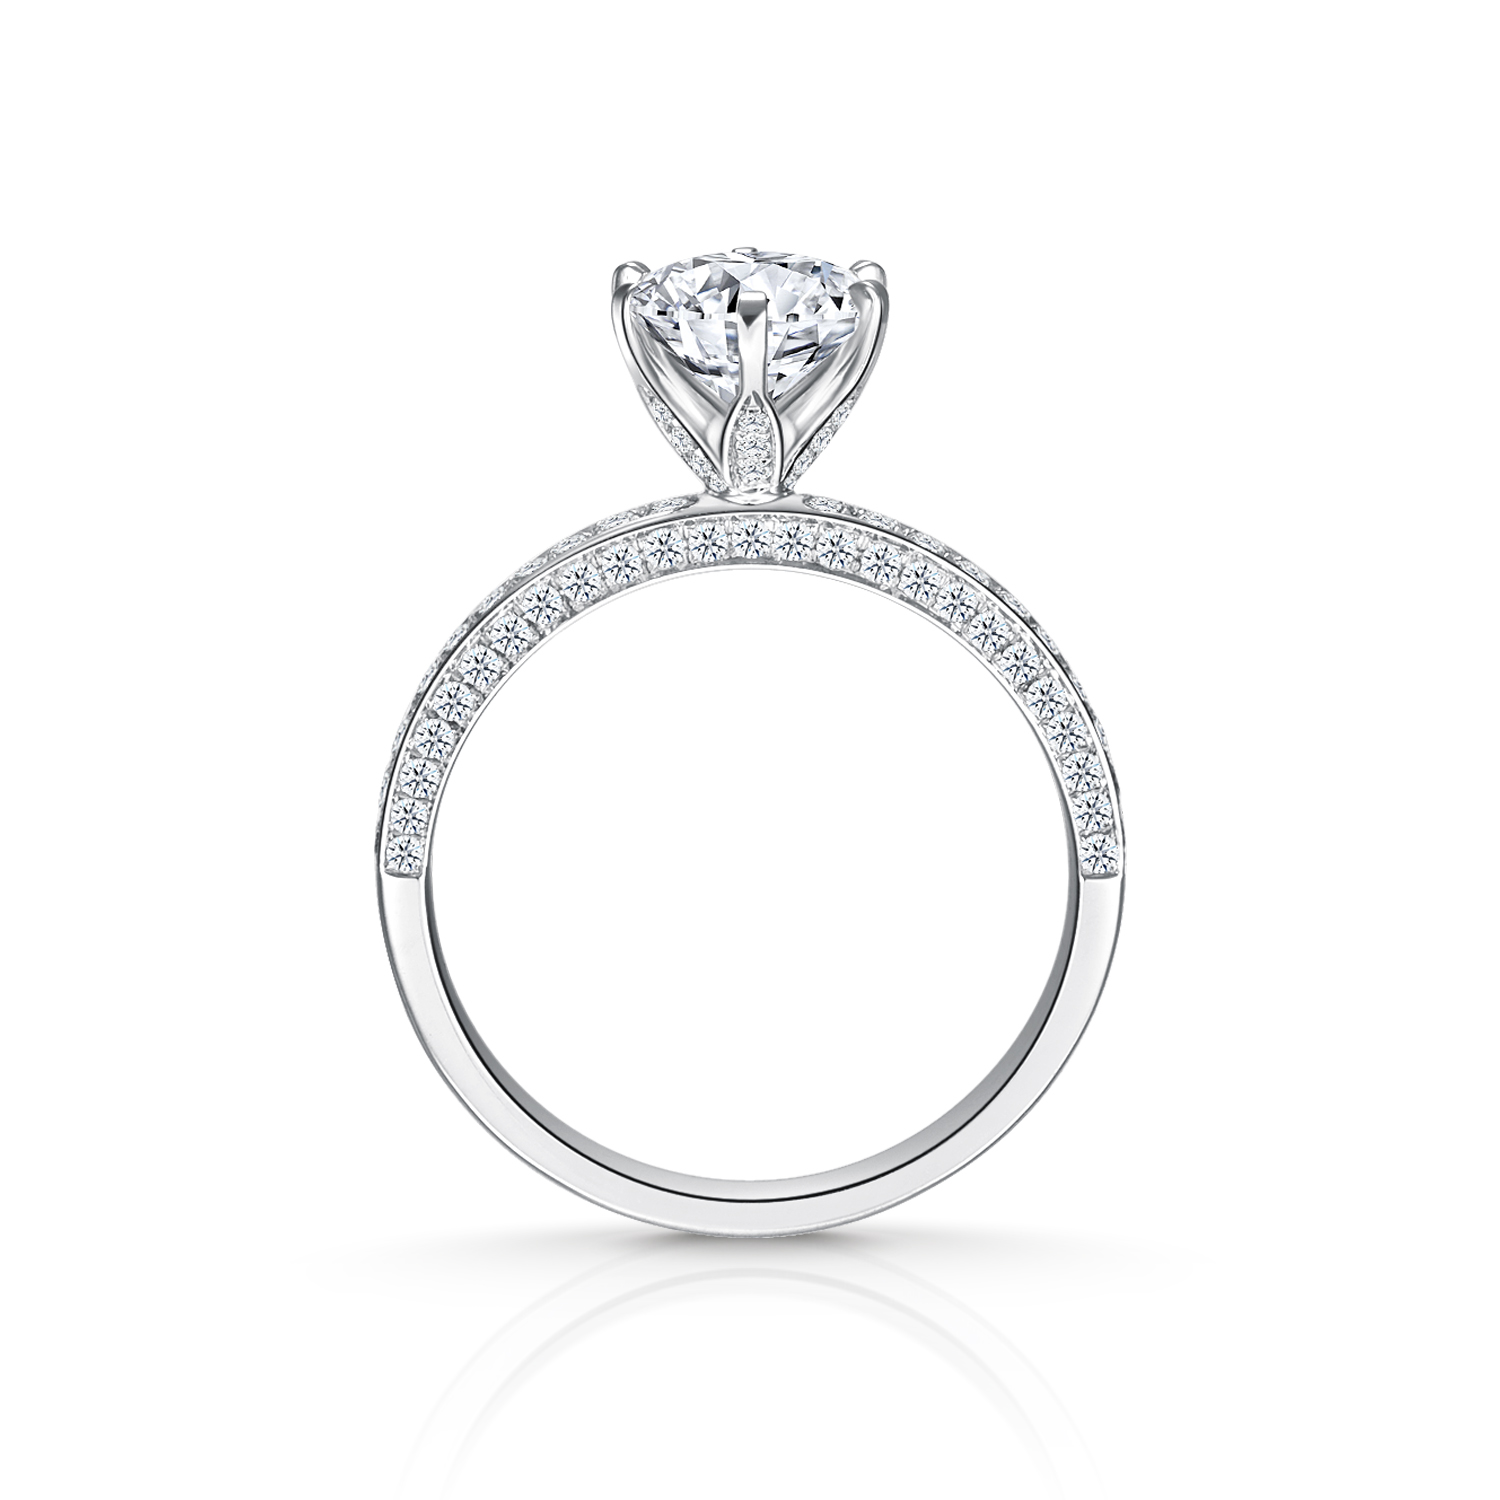 Everly Ring